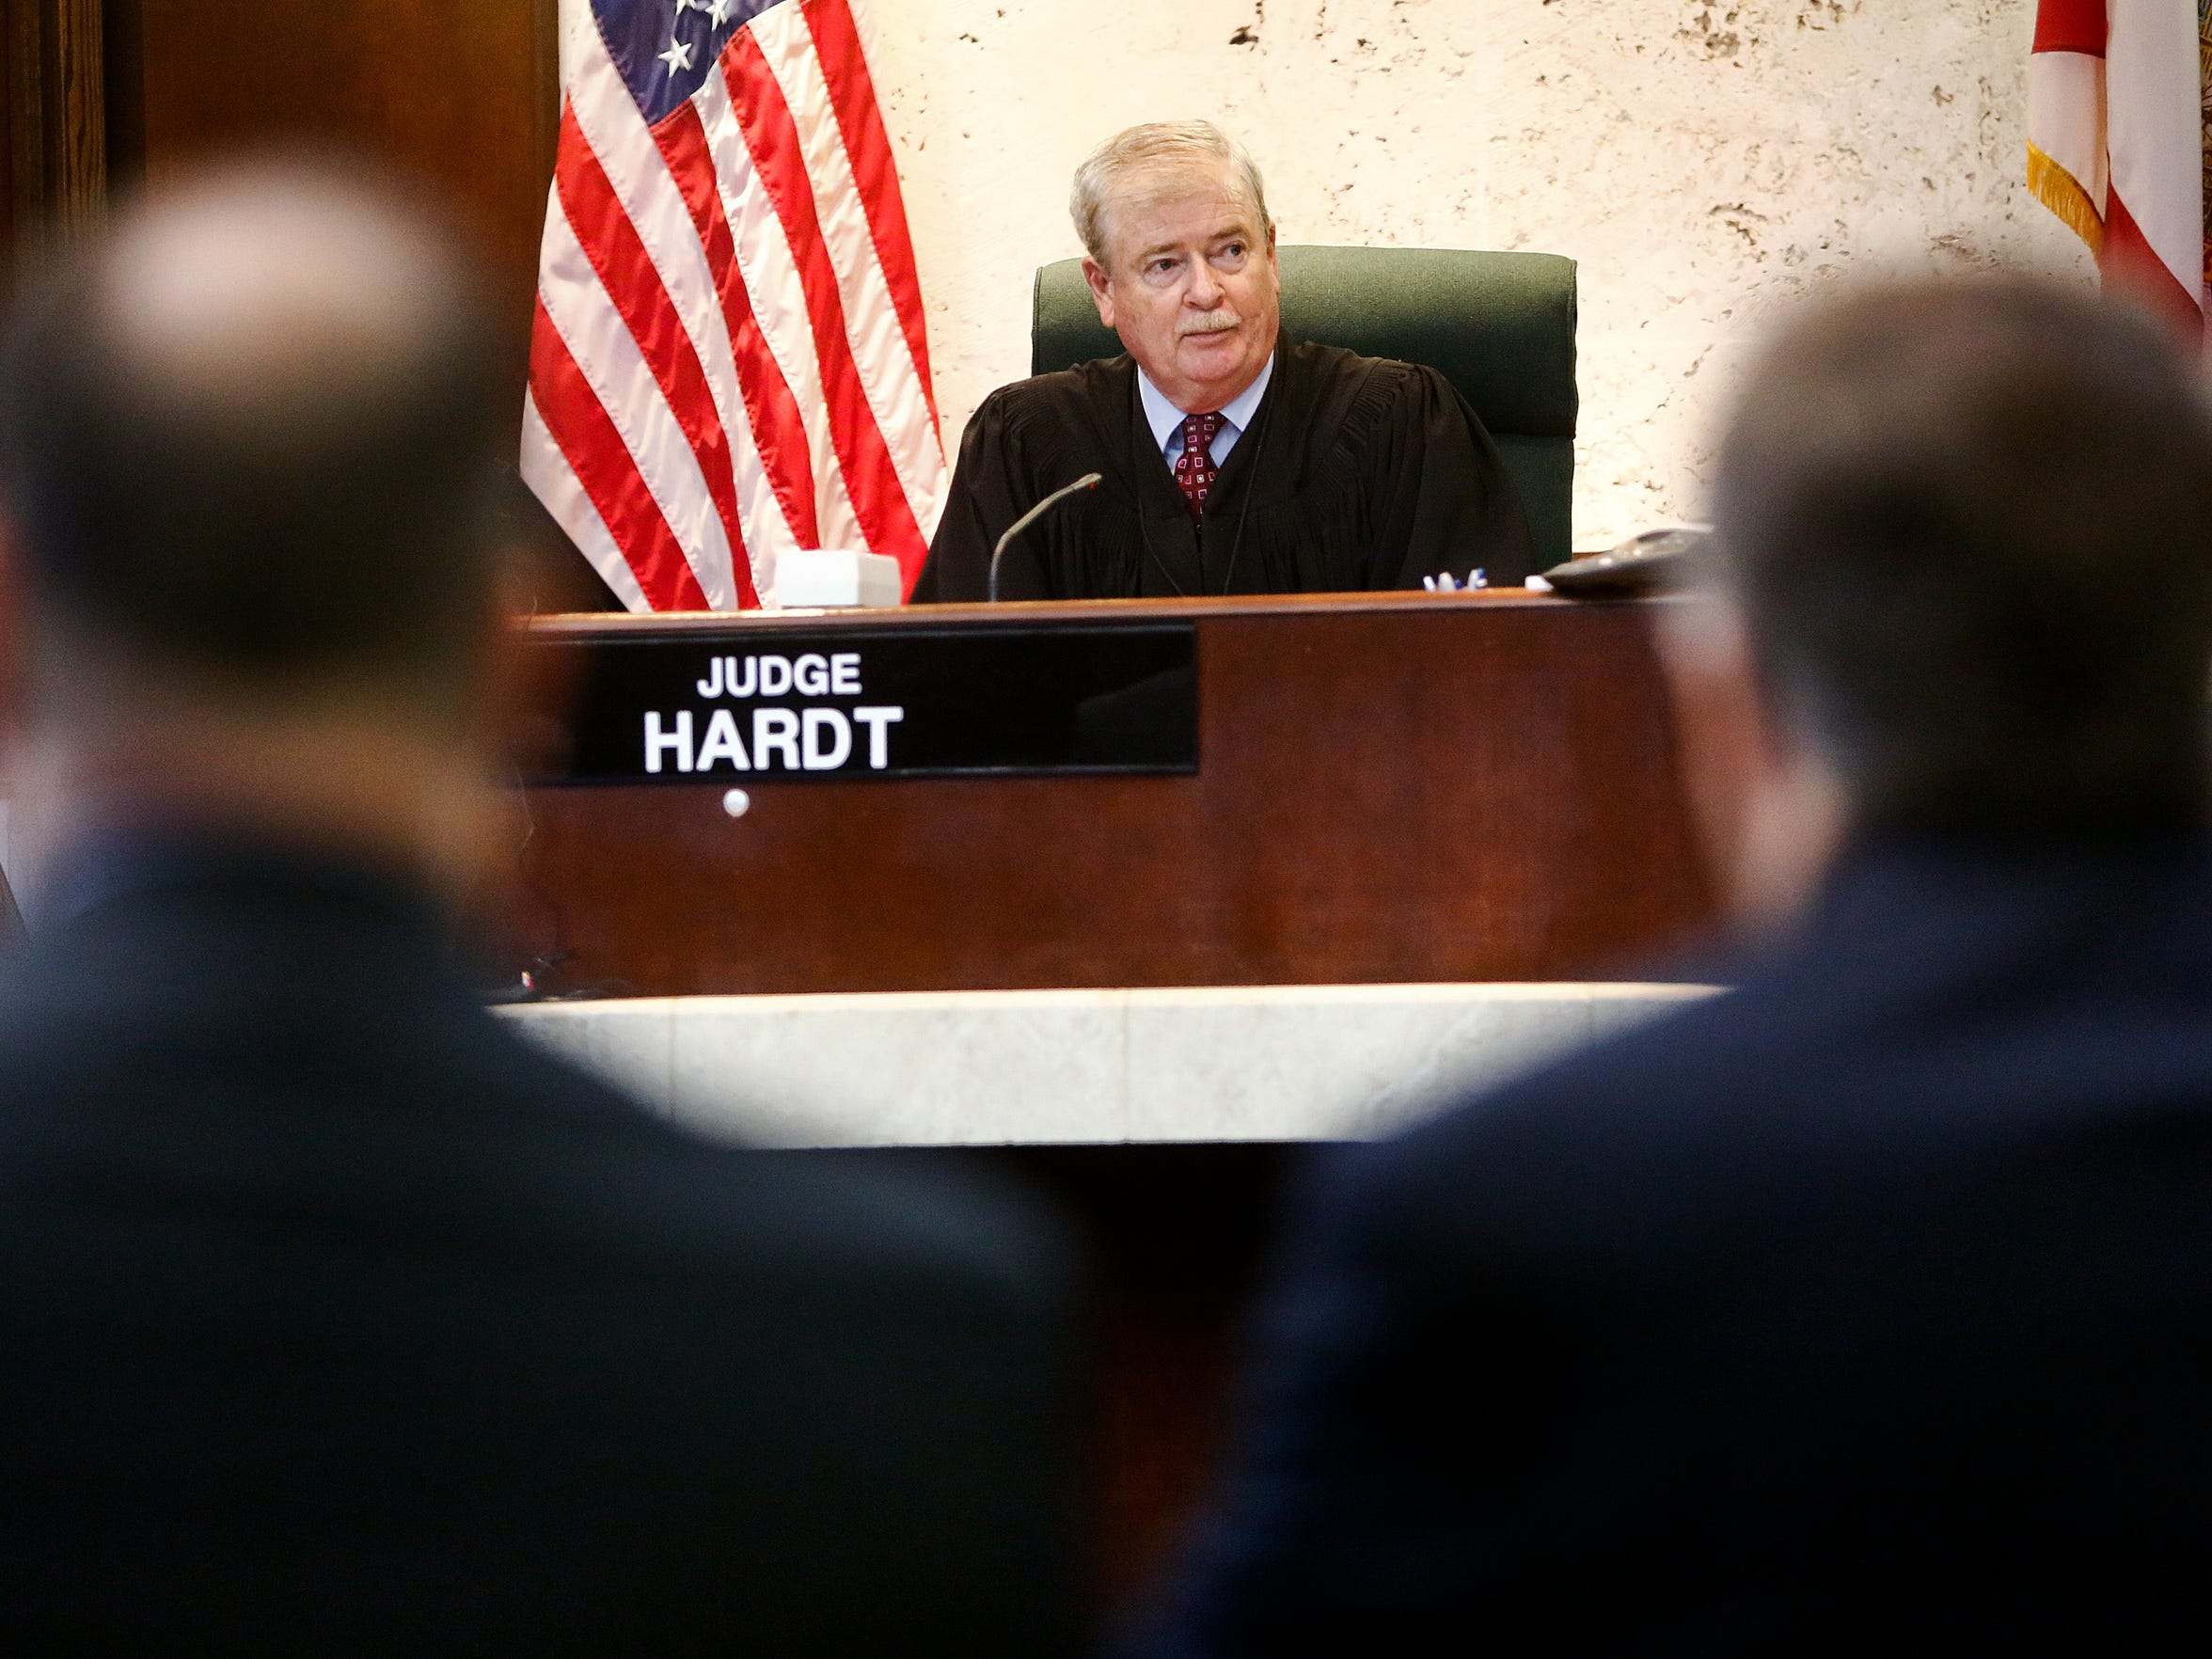 Judge Fred Hardt listens to members of the defense during a case management hearing for Mesac Damas at the Collier County Court House on Friday, Aug. 28, 2015.